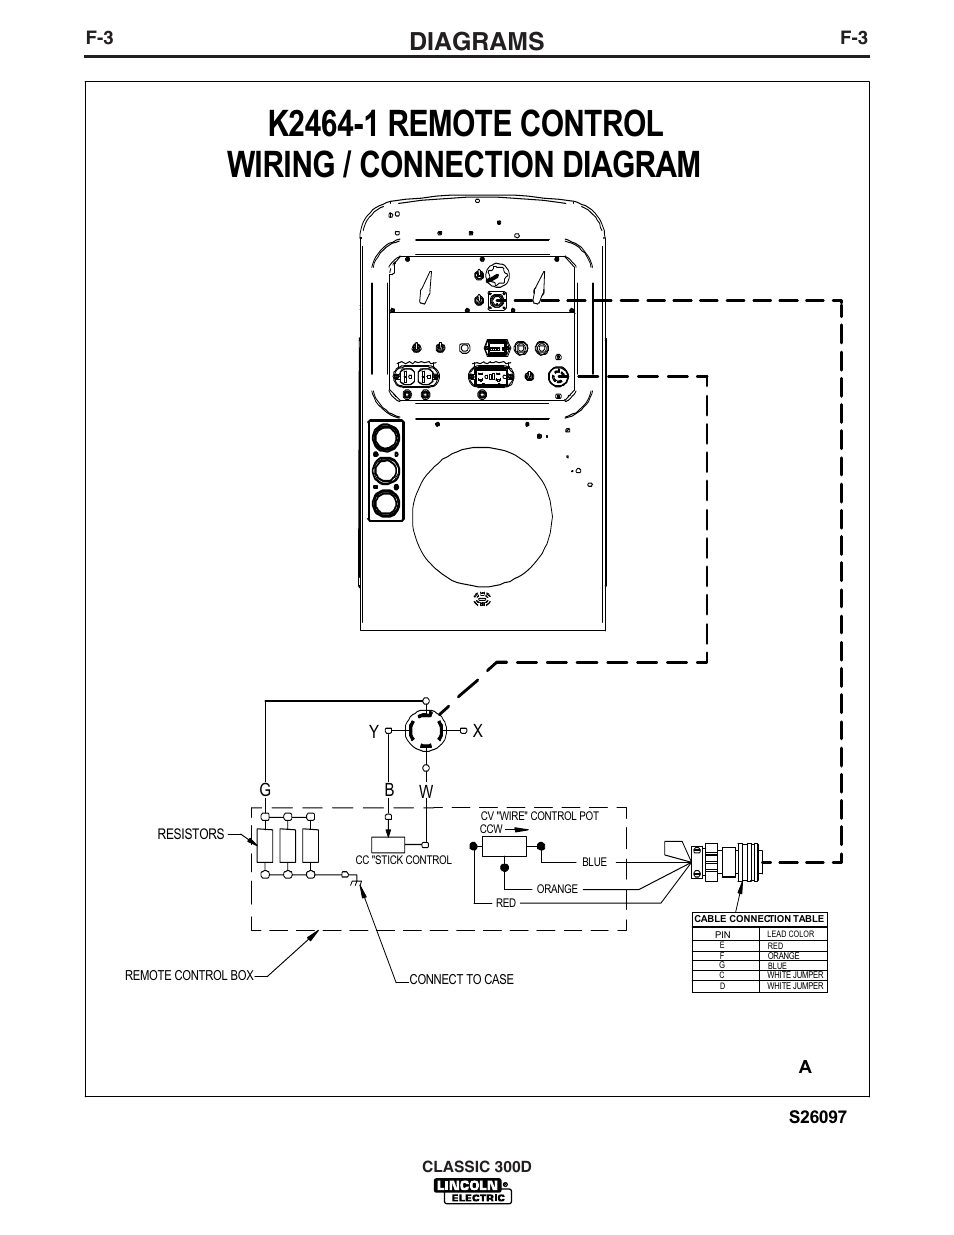 hight resolution of diagrams yx b g w lincoln electric im631 classic 300 d user manual page 30 34